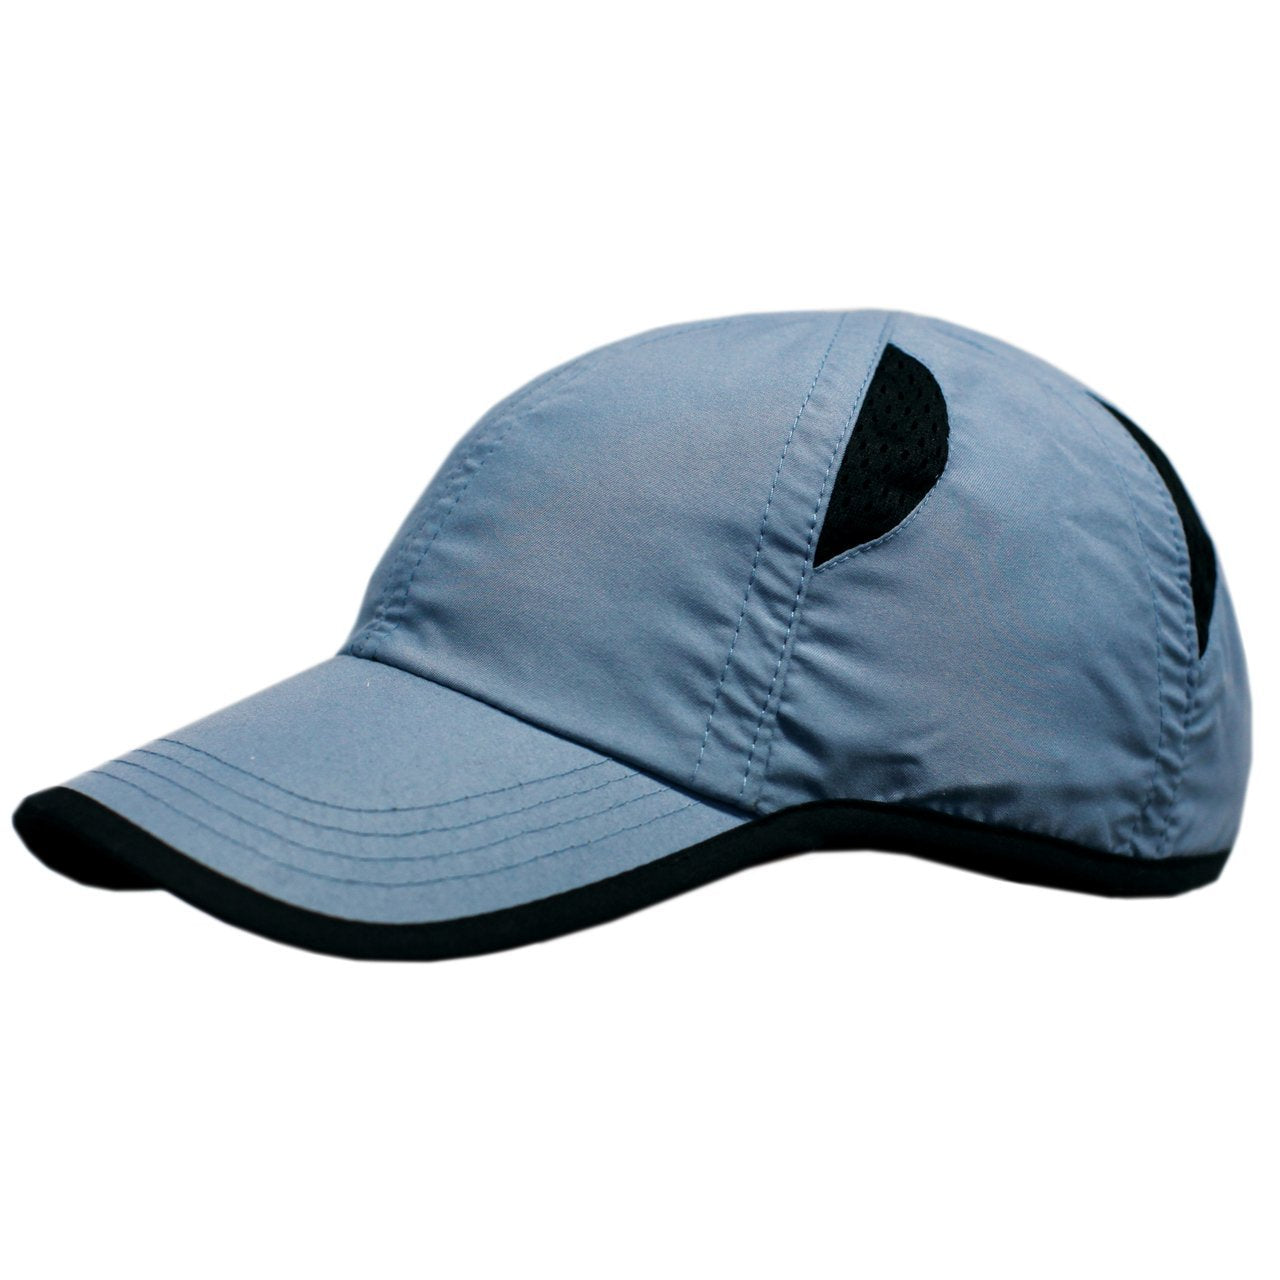 6975-BL Backcountry Hat - Blue